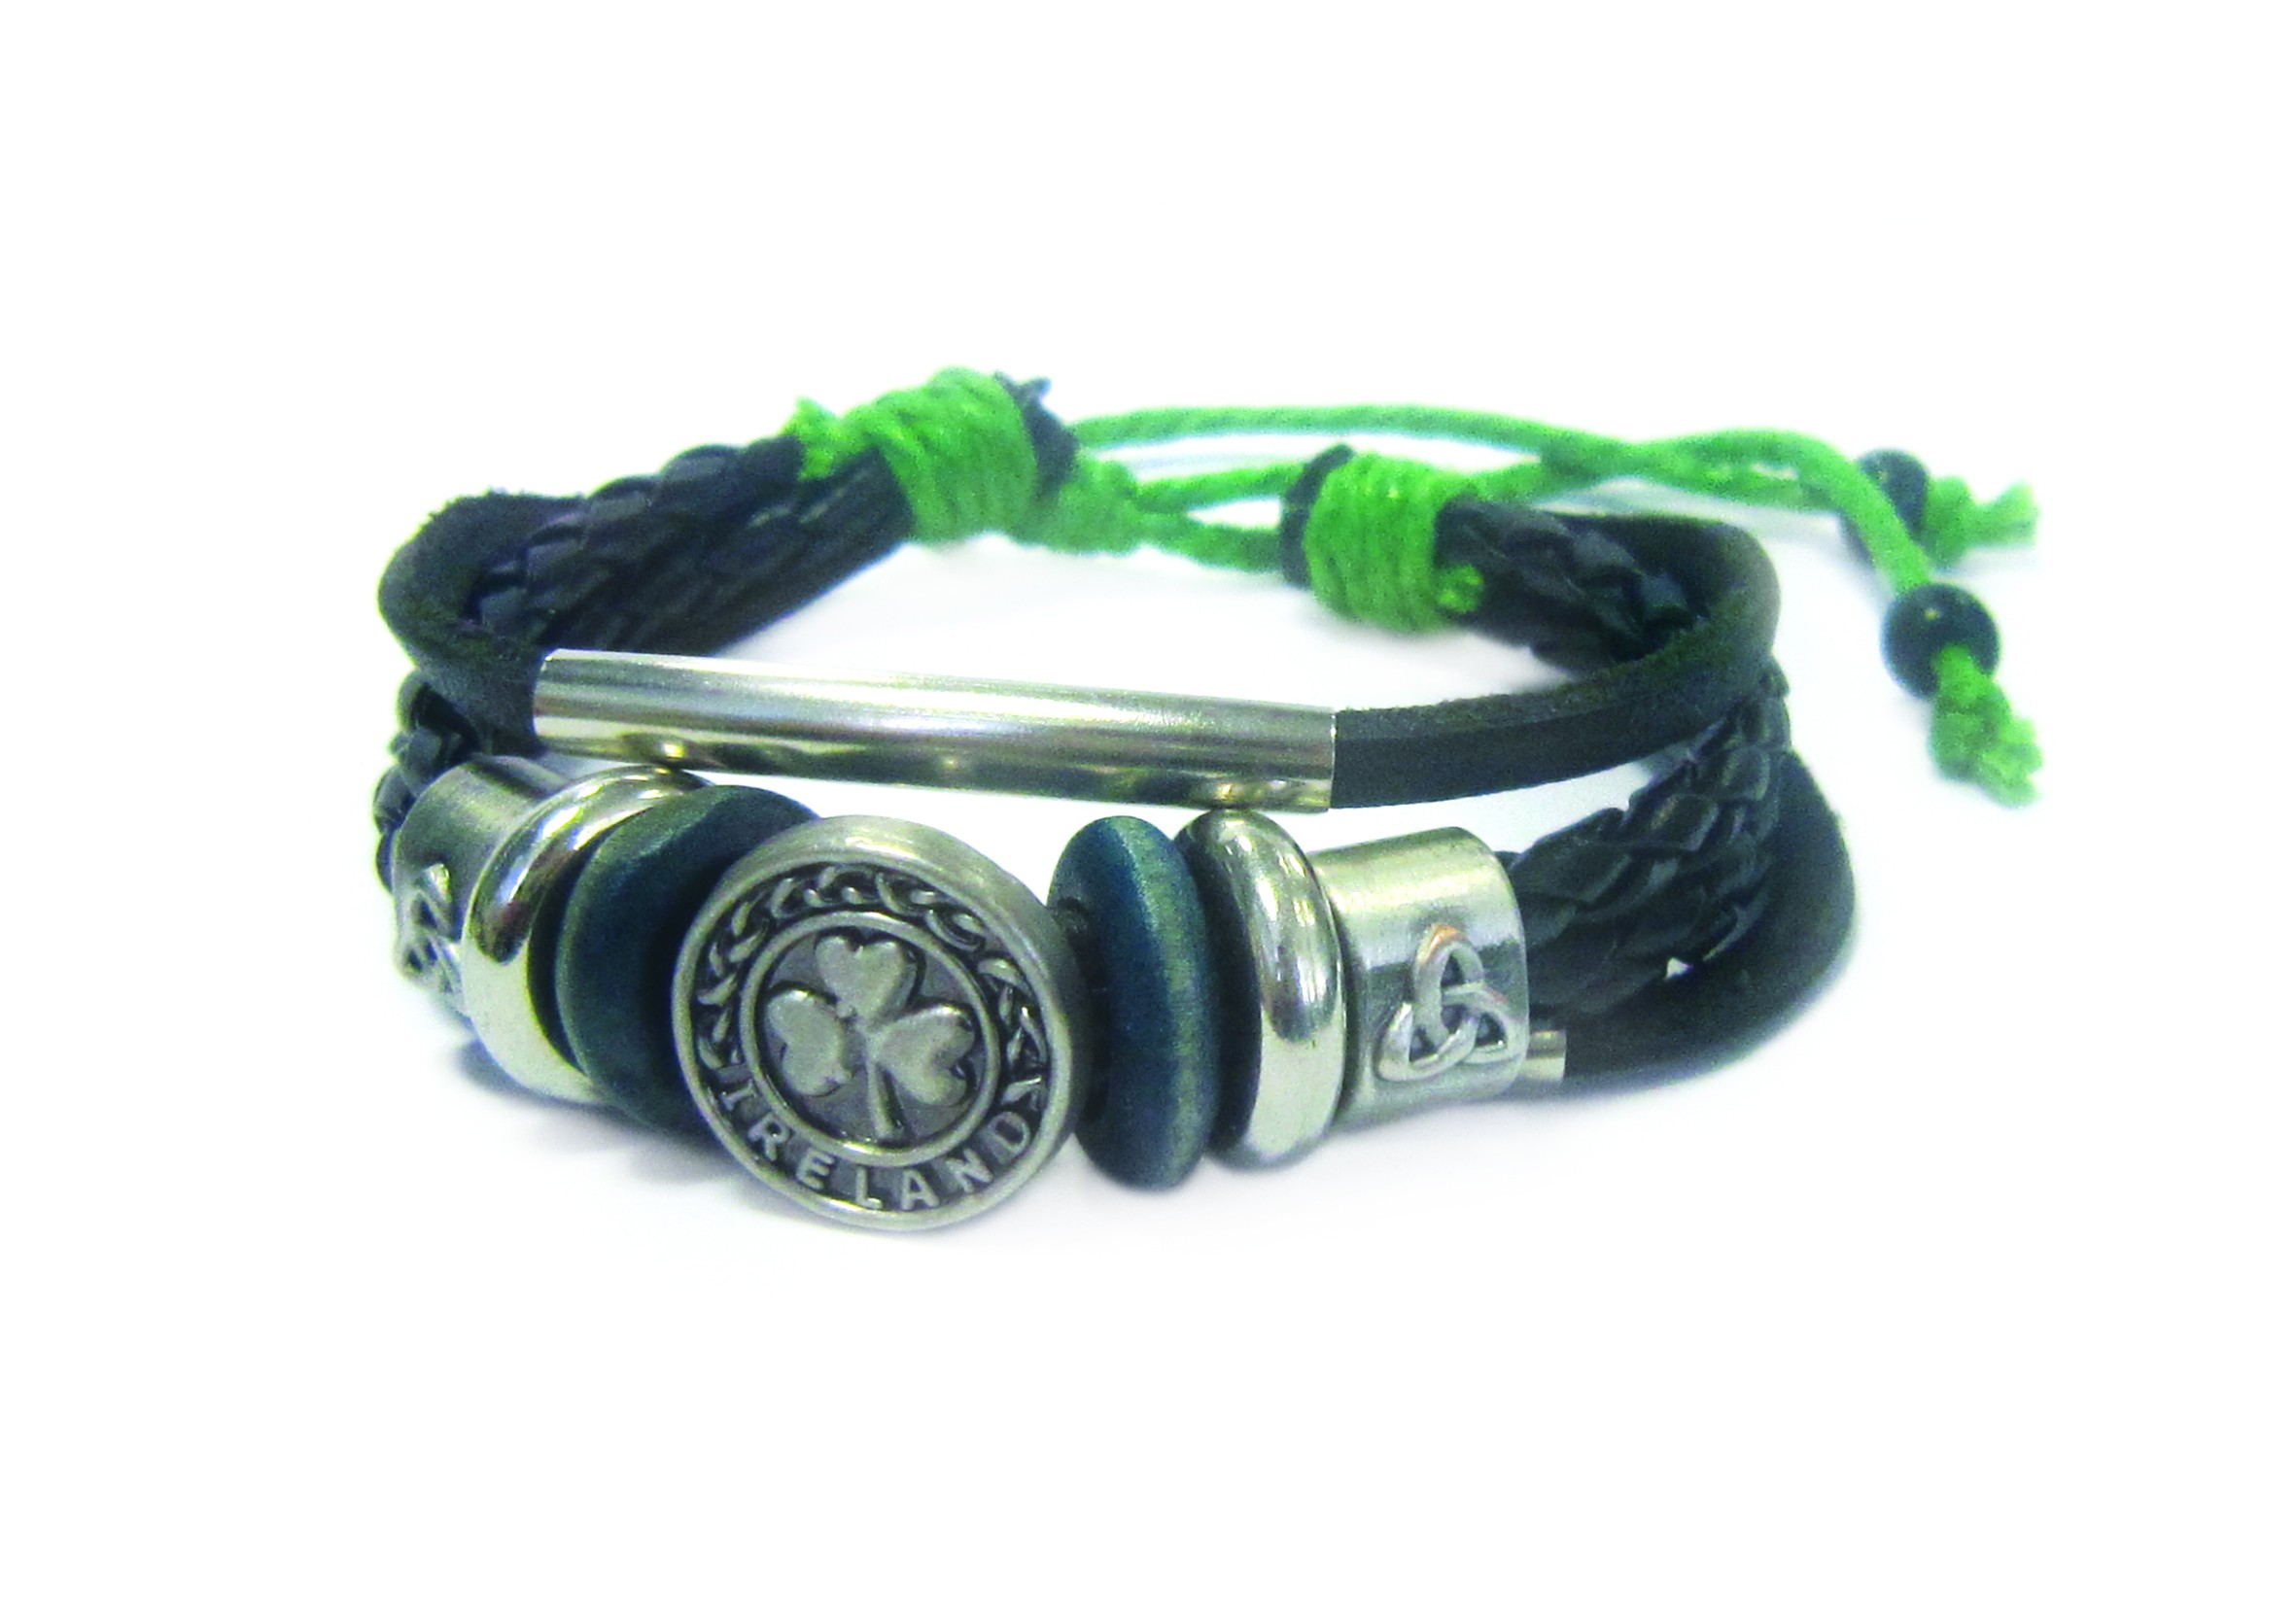 Genuine Black Leather Bracelet With Trinity And Shamrock